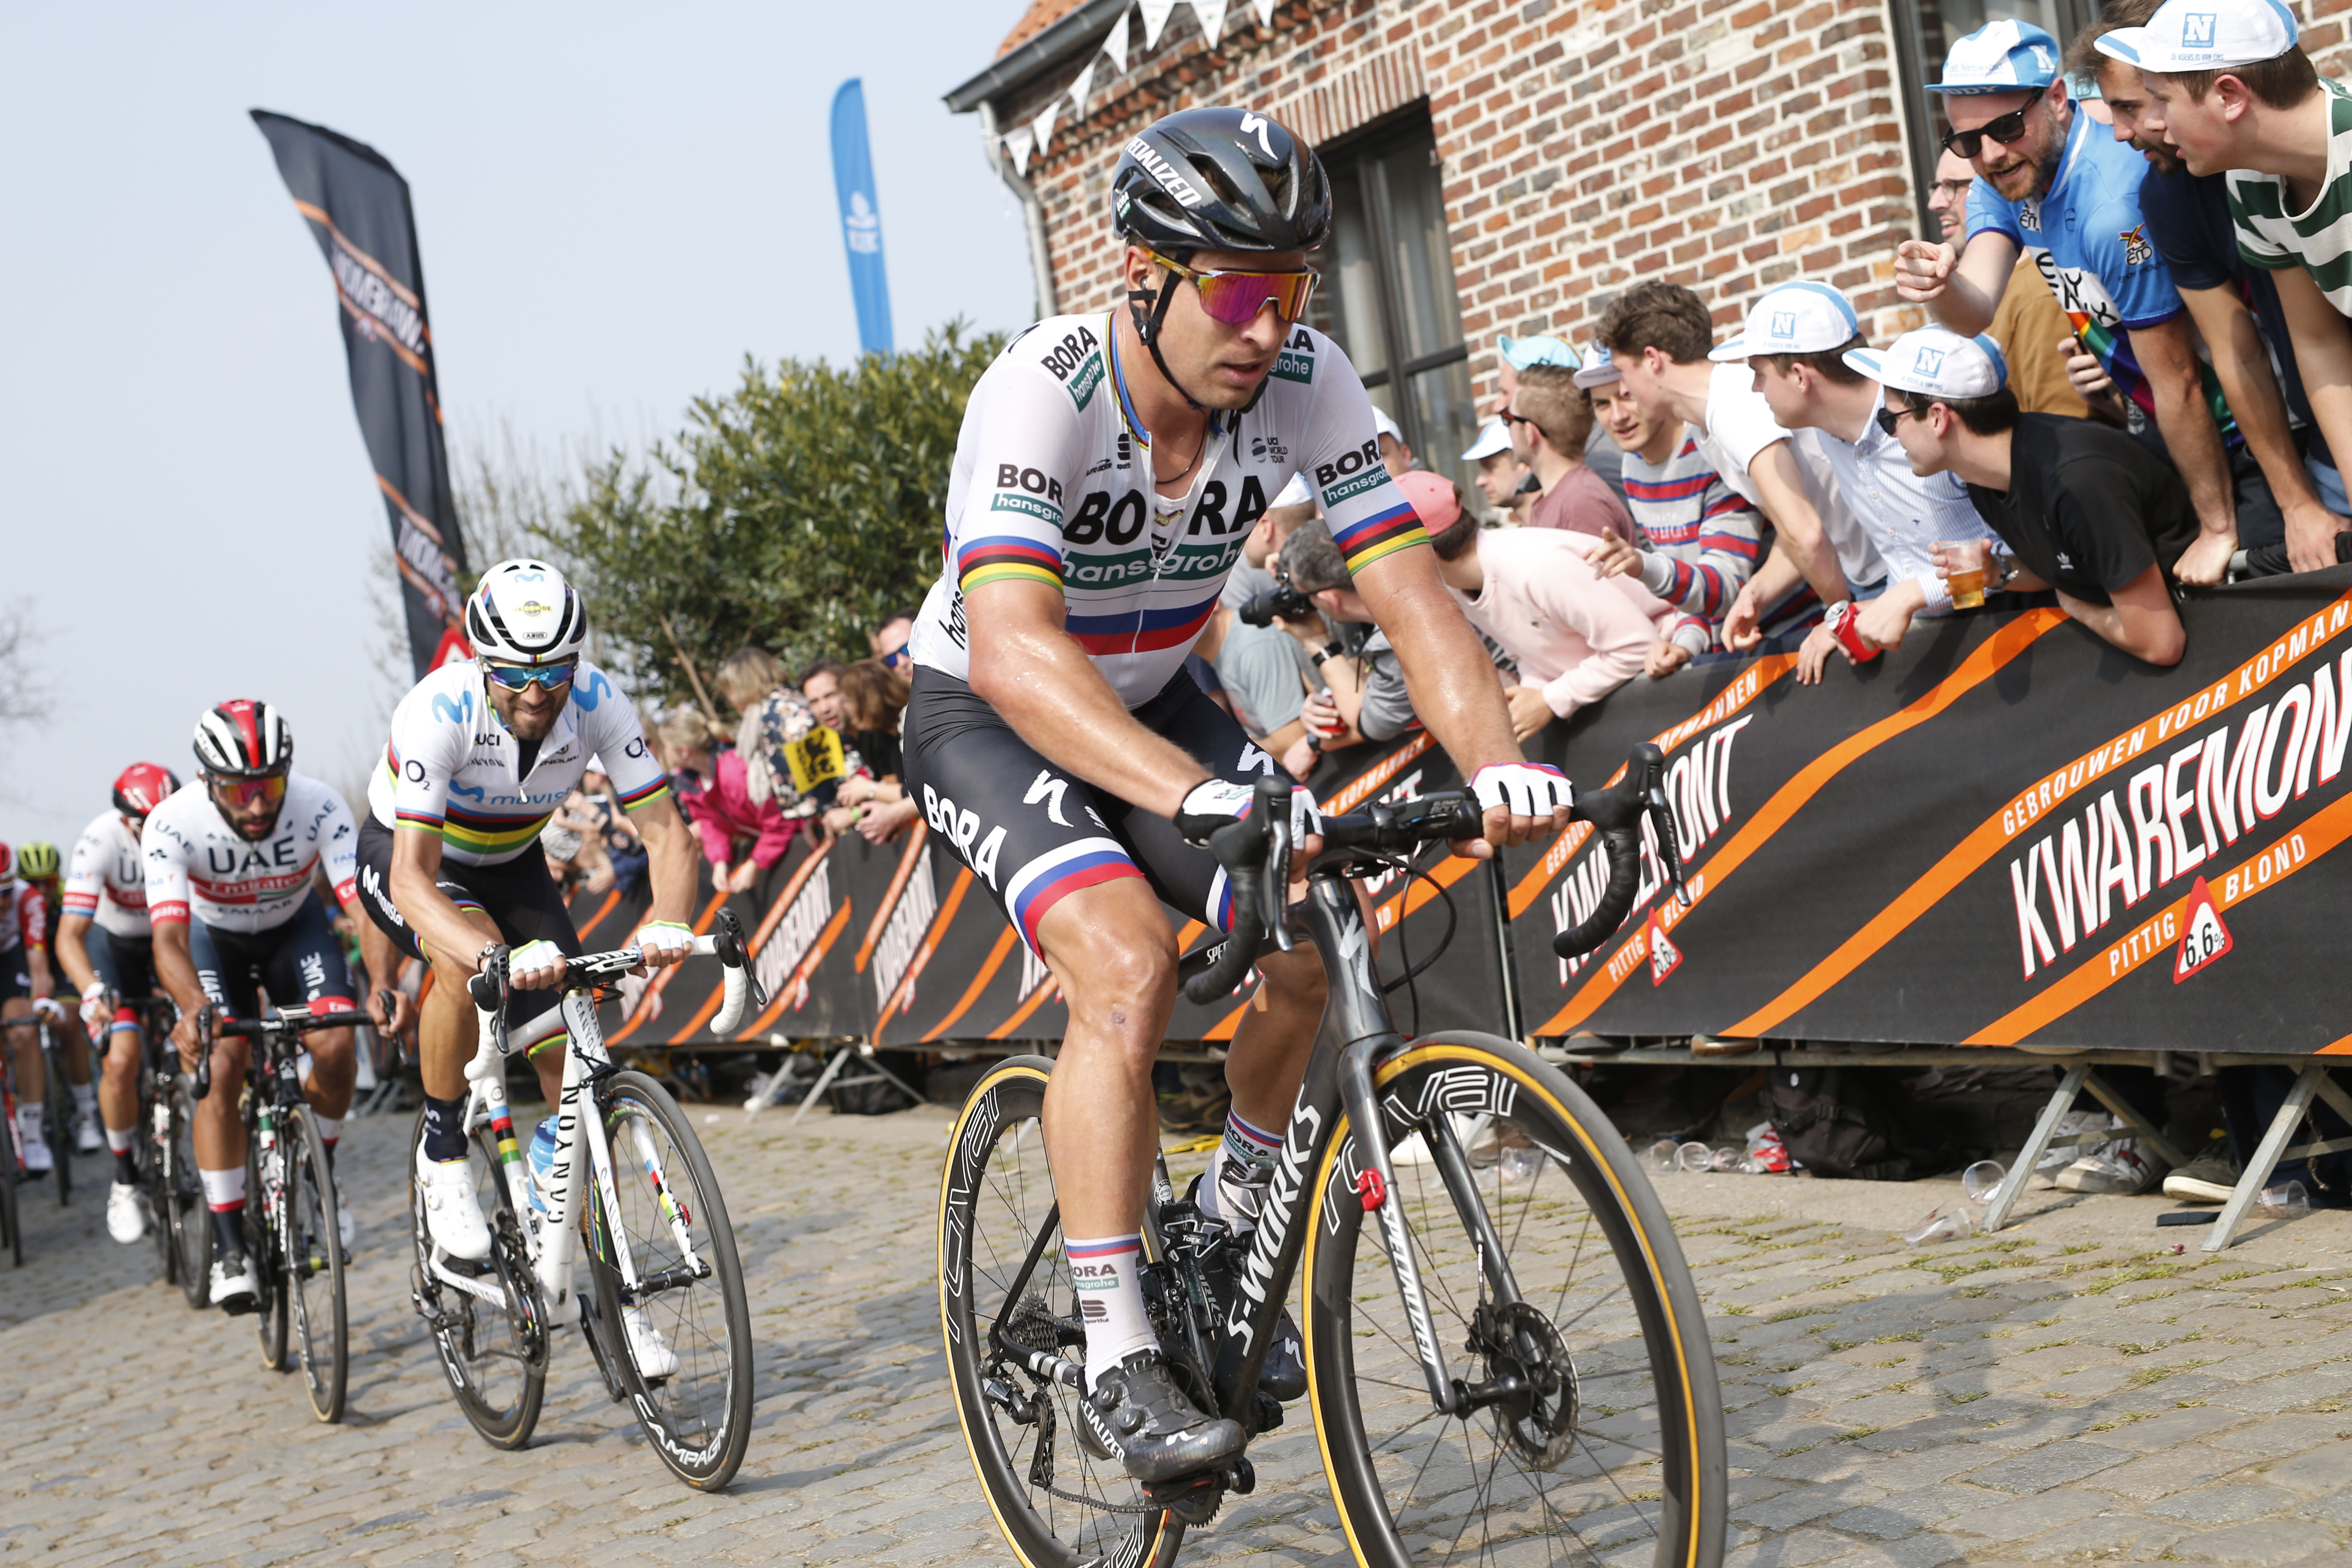 Peter Sagan: 'I am not like I was in the Tour of Flanders three years ago'